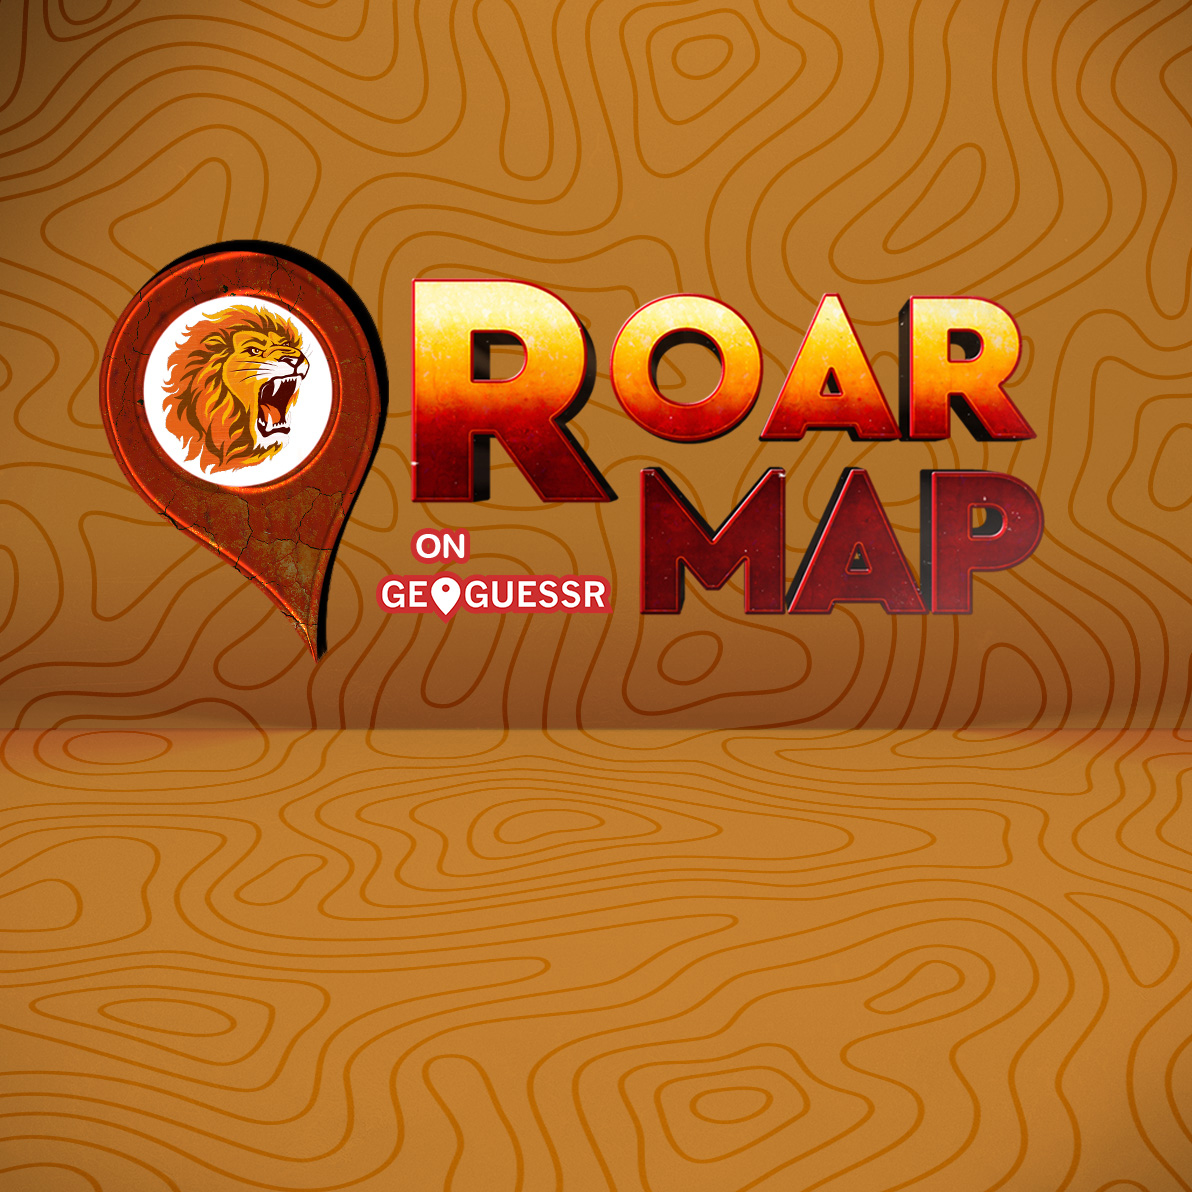 Roar Map - Lion cereals